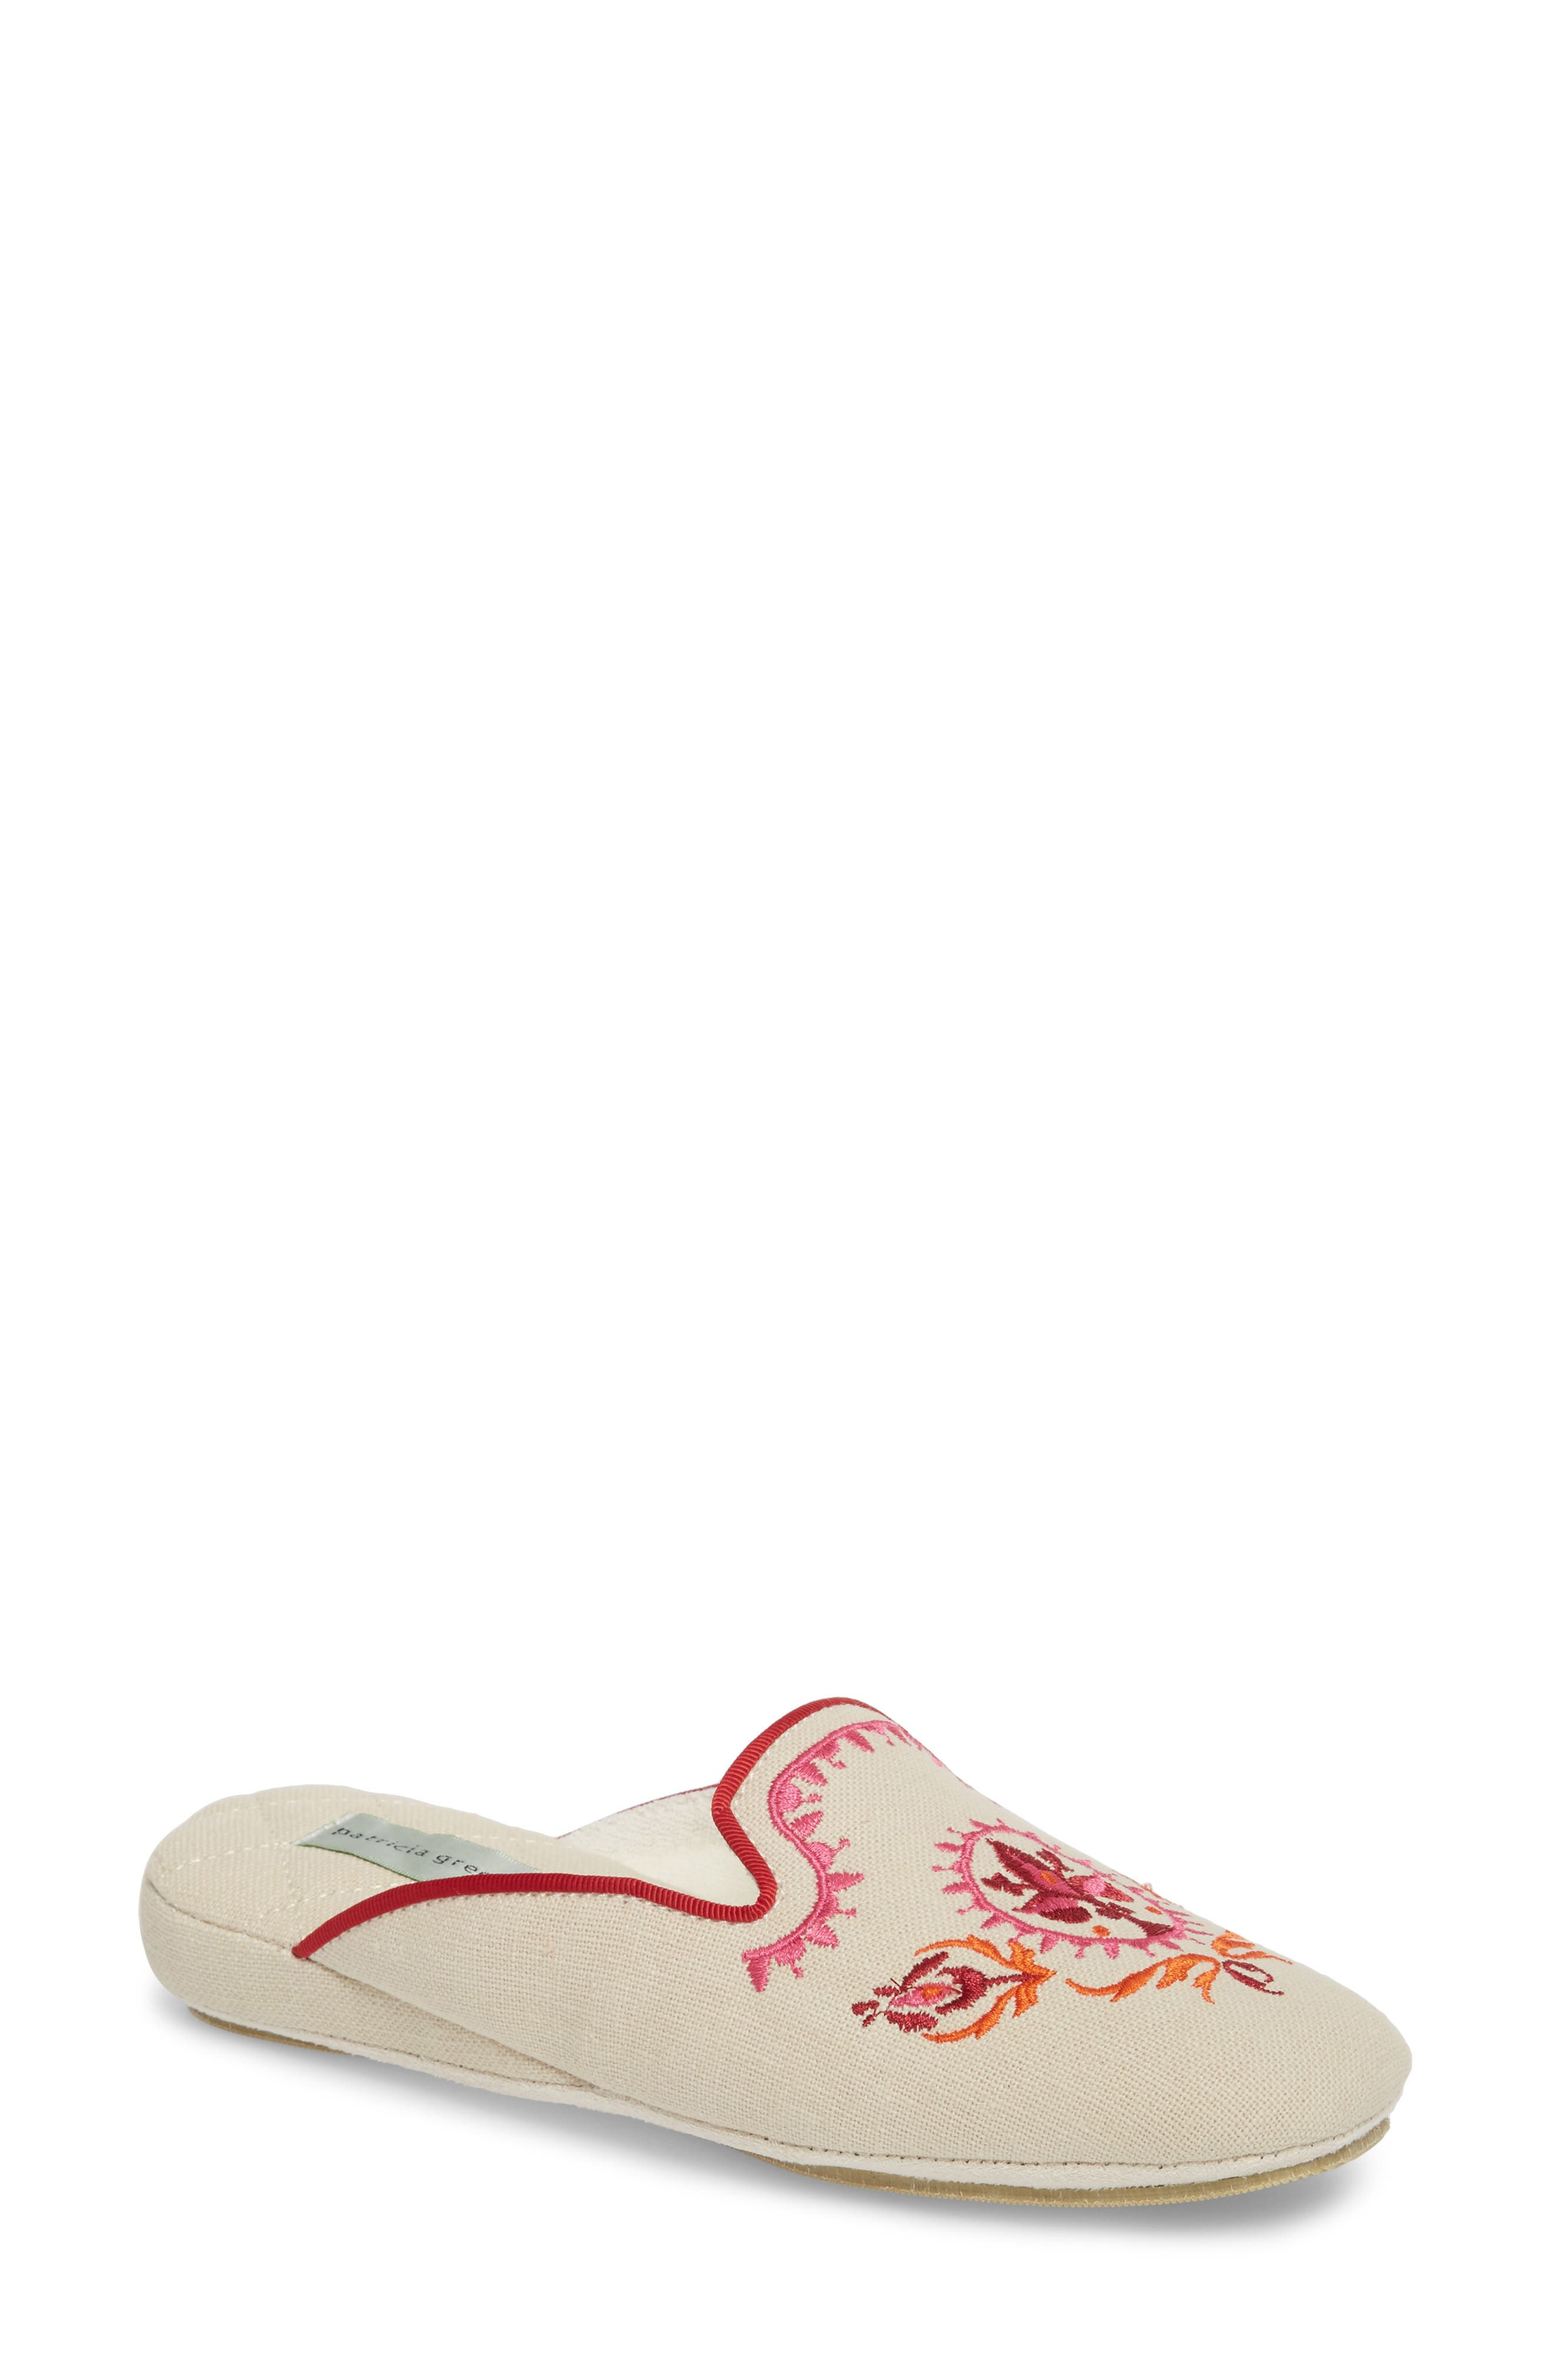 Rosa Embroidered Slipper,                             Main thumbnail 1, color,                             PINK FABRIC